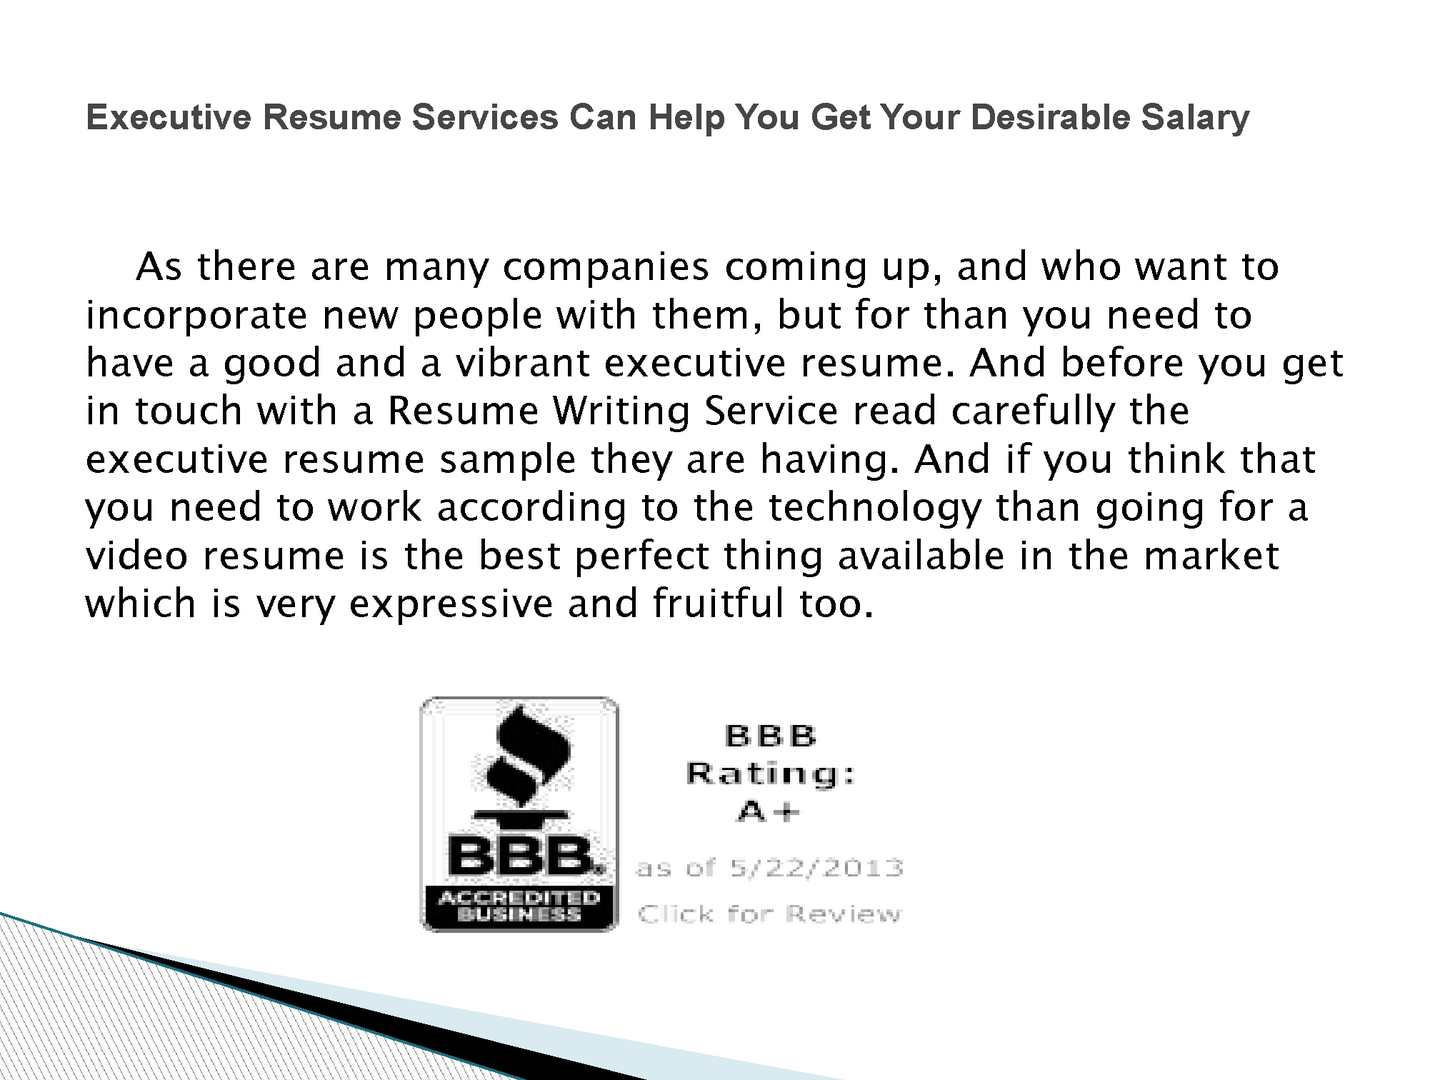 calaméo resume writing service services p1 resident assistant lateral police officer Resume Bbb Resume Writing Services